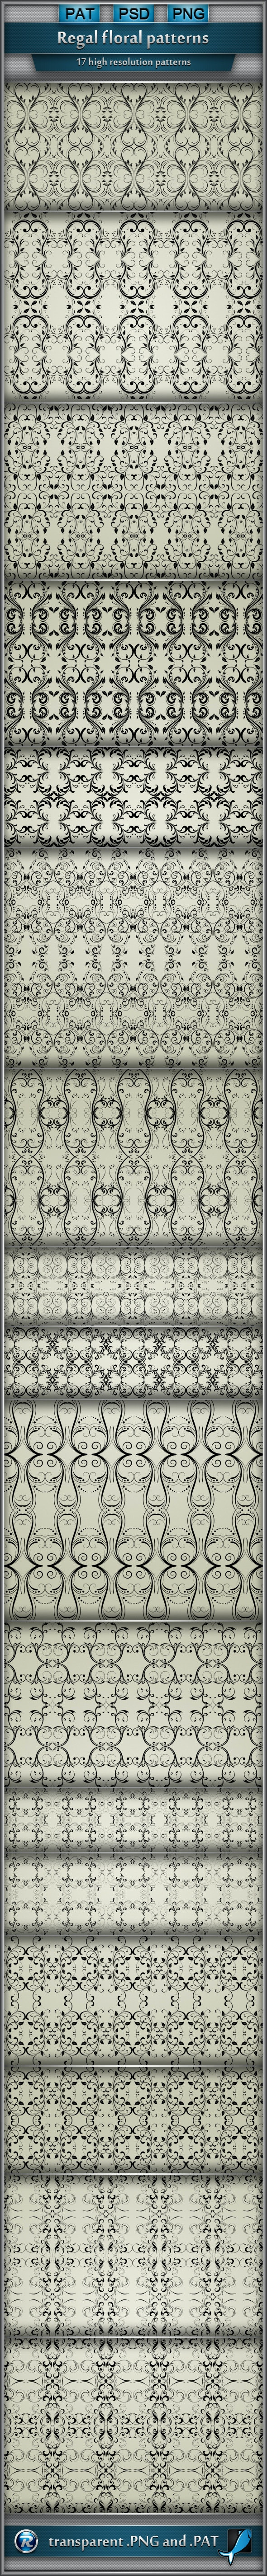 Regal Floral Patterns - Artistic Textures / Fills / Patterns